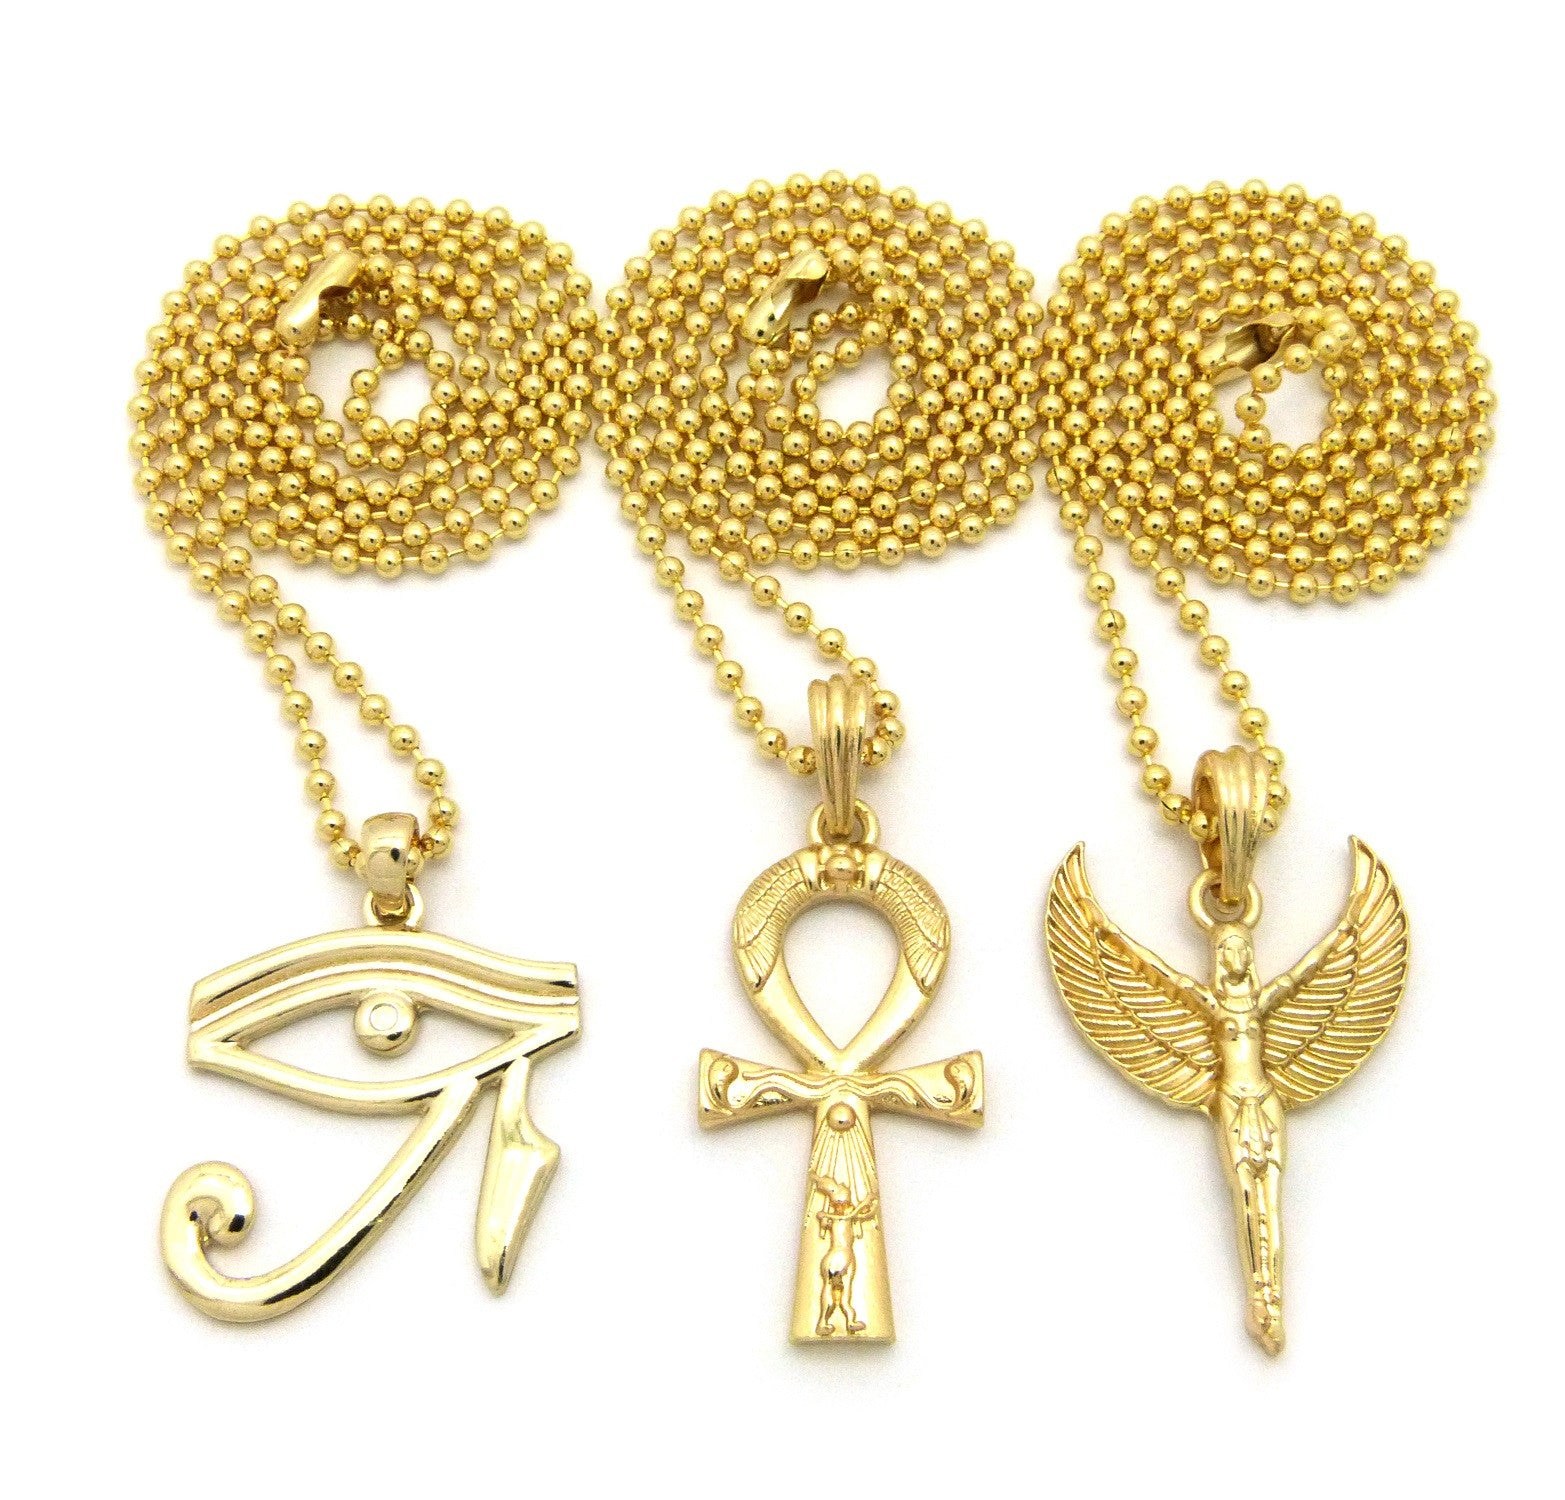 3 Set Chain: Egyptian Eye Ankh Cross and Egyptian God. On 3 24inch Ball Chains